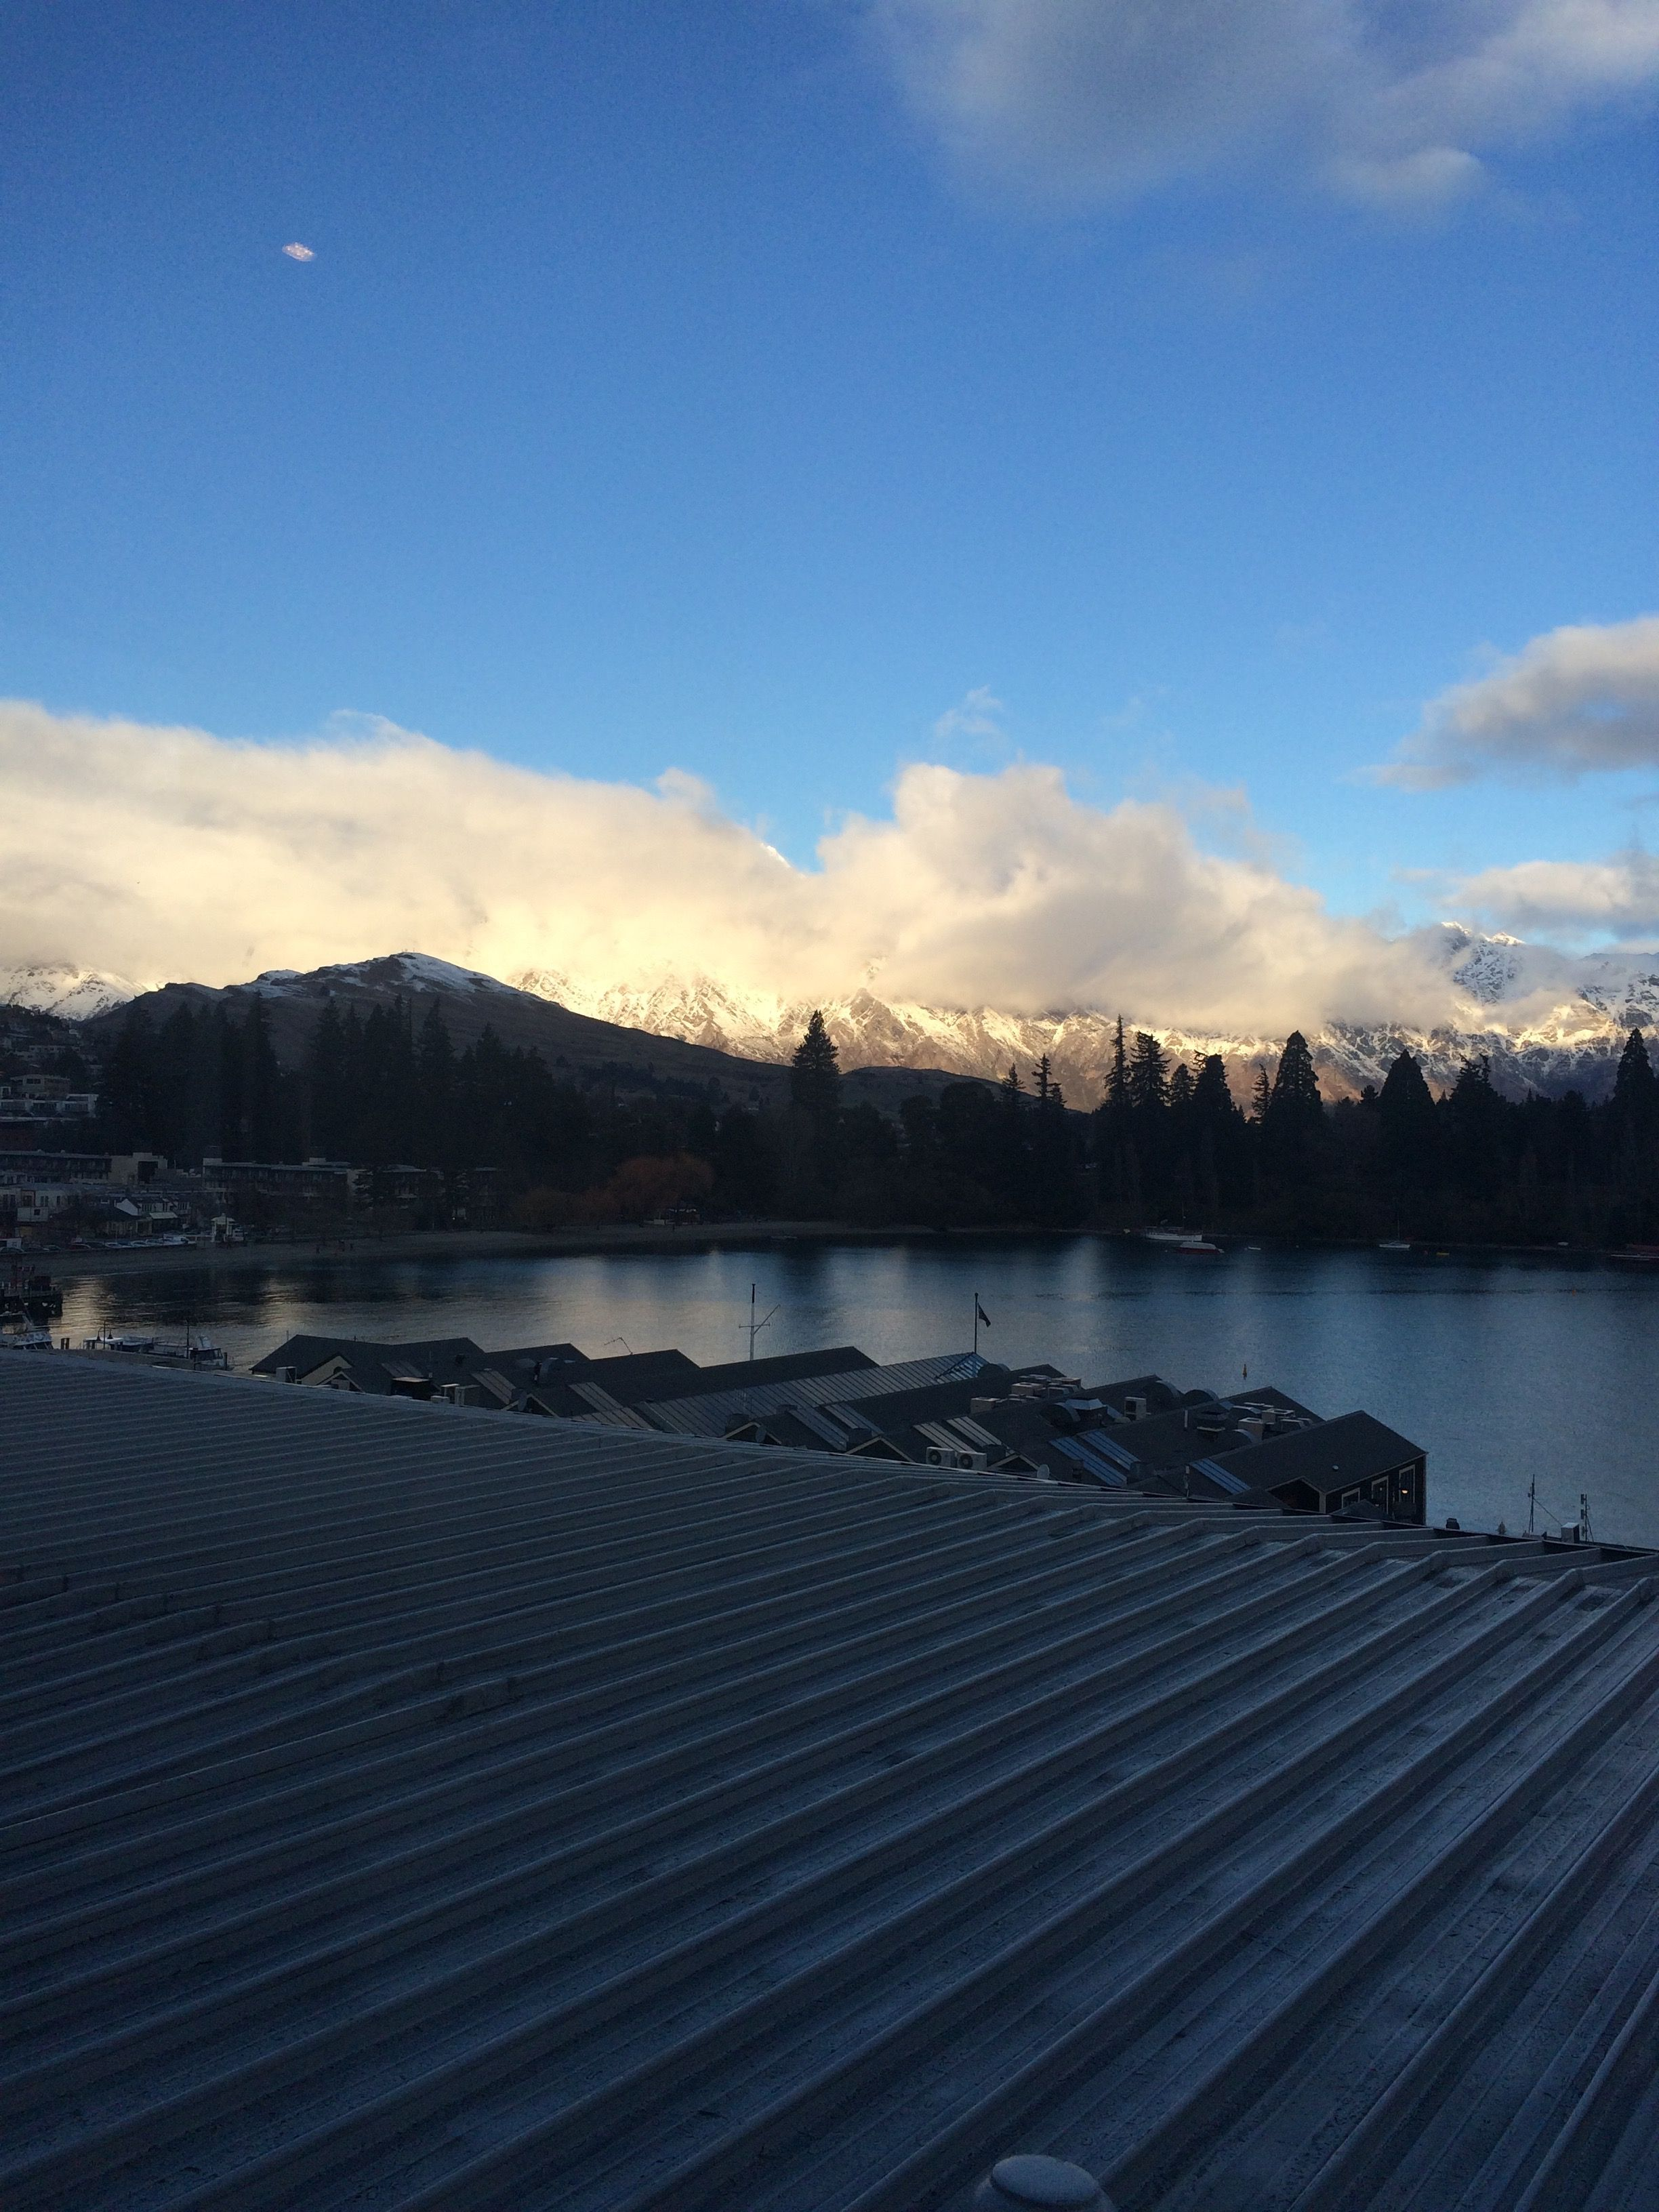 Pinterest emmadearlove :) Another pic of Queenstown. But you honestly cannot get enough of this place!